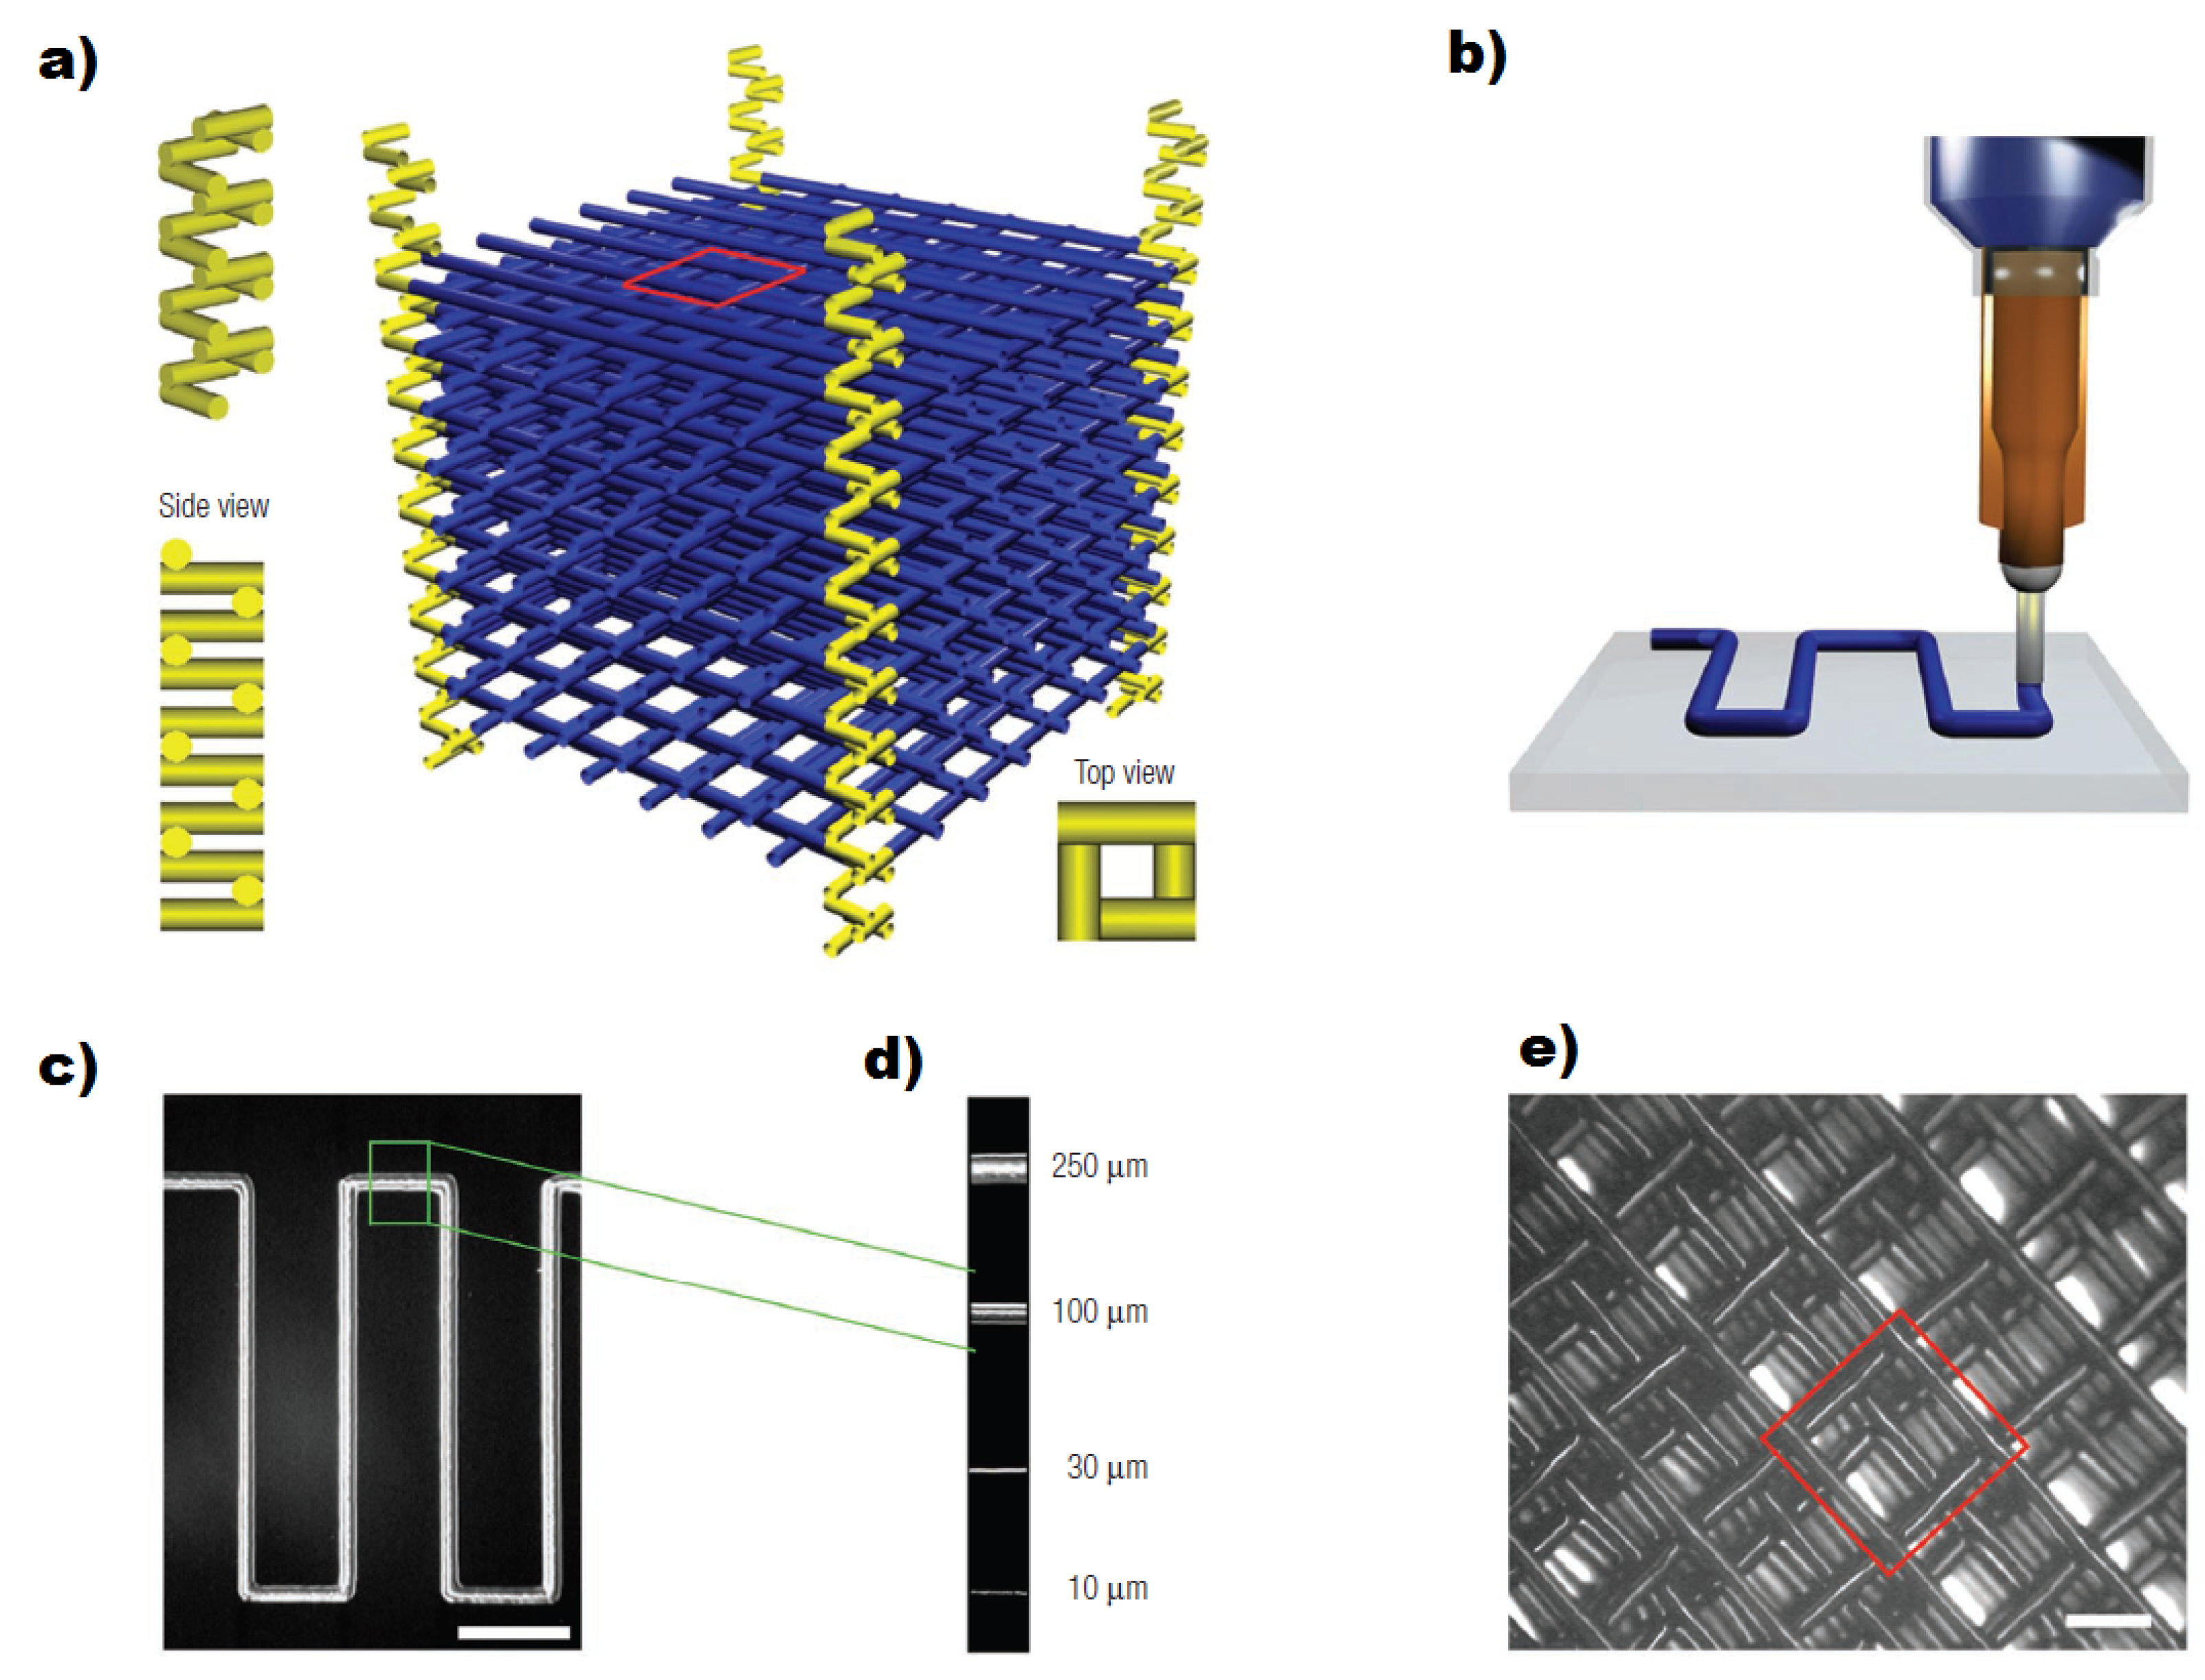 microfluidic devices for biomedical applications